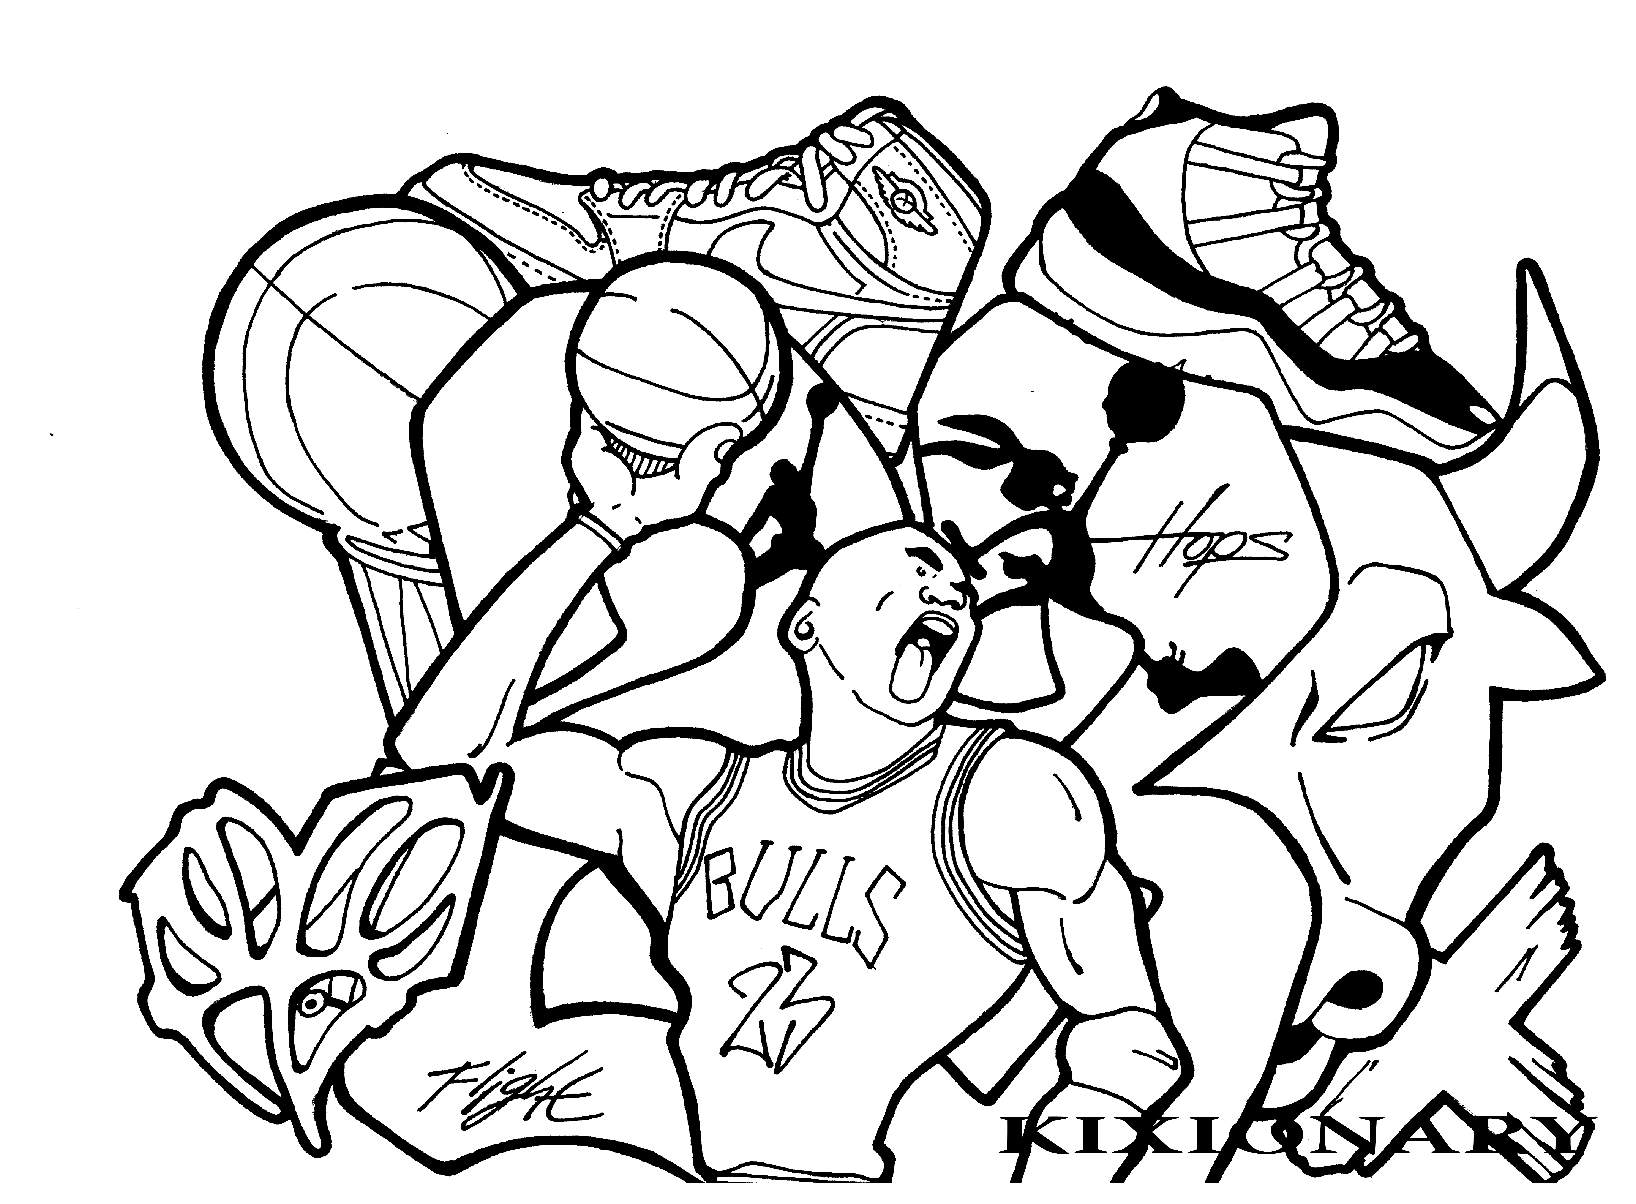 Coloring pictures for adults - Coloring Adult Graffiti Michael Jordan By Kixionary World Free